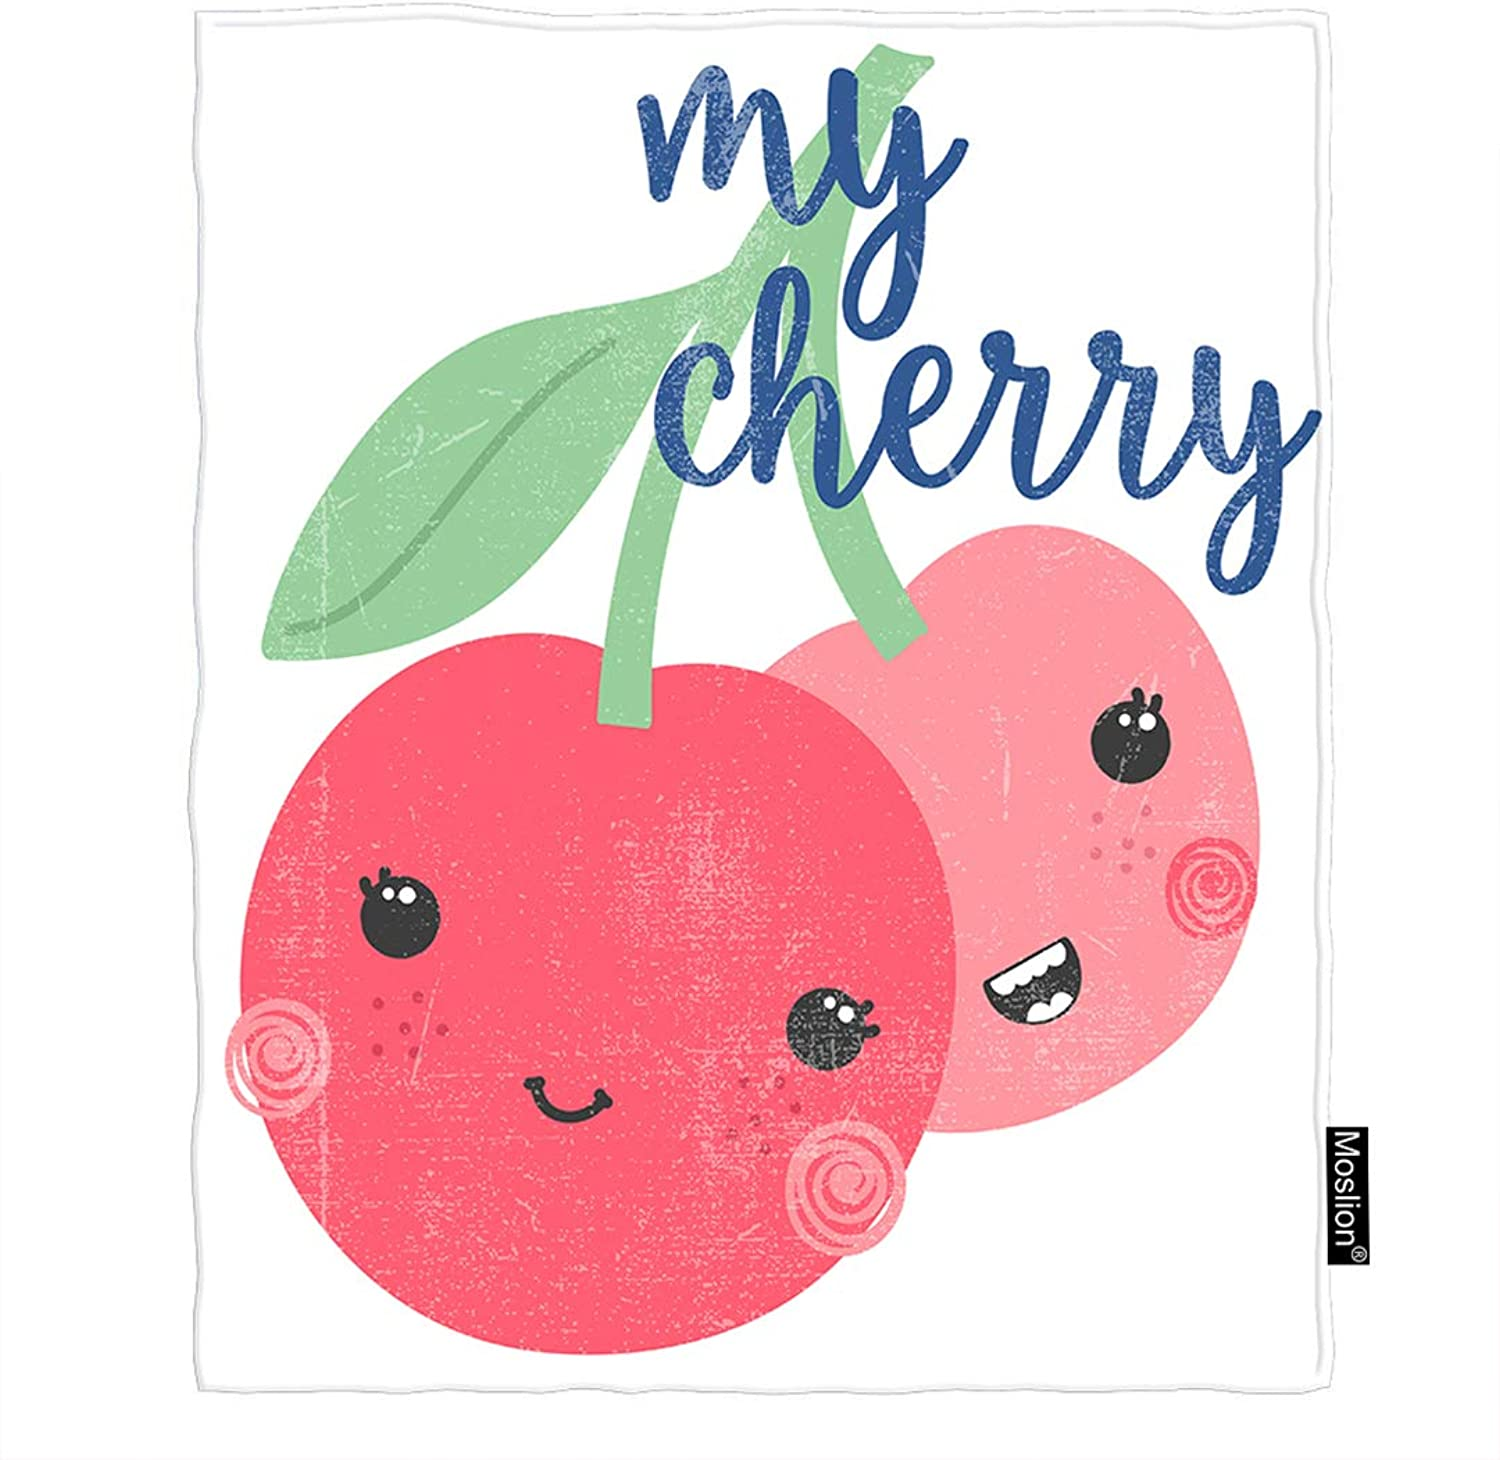 Moslion Cherry Blanket Cute Fruit Smiley Cherries Pink Flush Green Leaves Throw Blanket Flannel Home Decorative Soft Cozy Blankets 60x80 Inch for Adults Kids Sofa